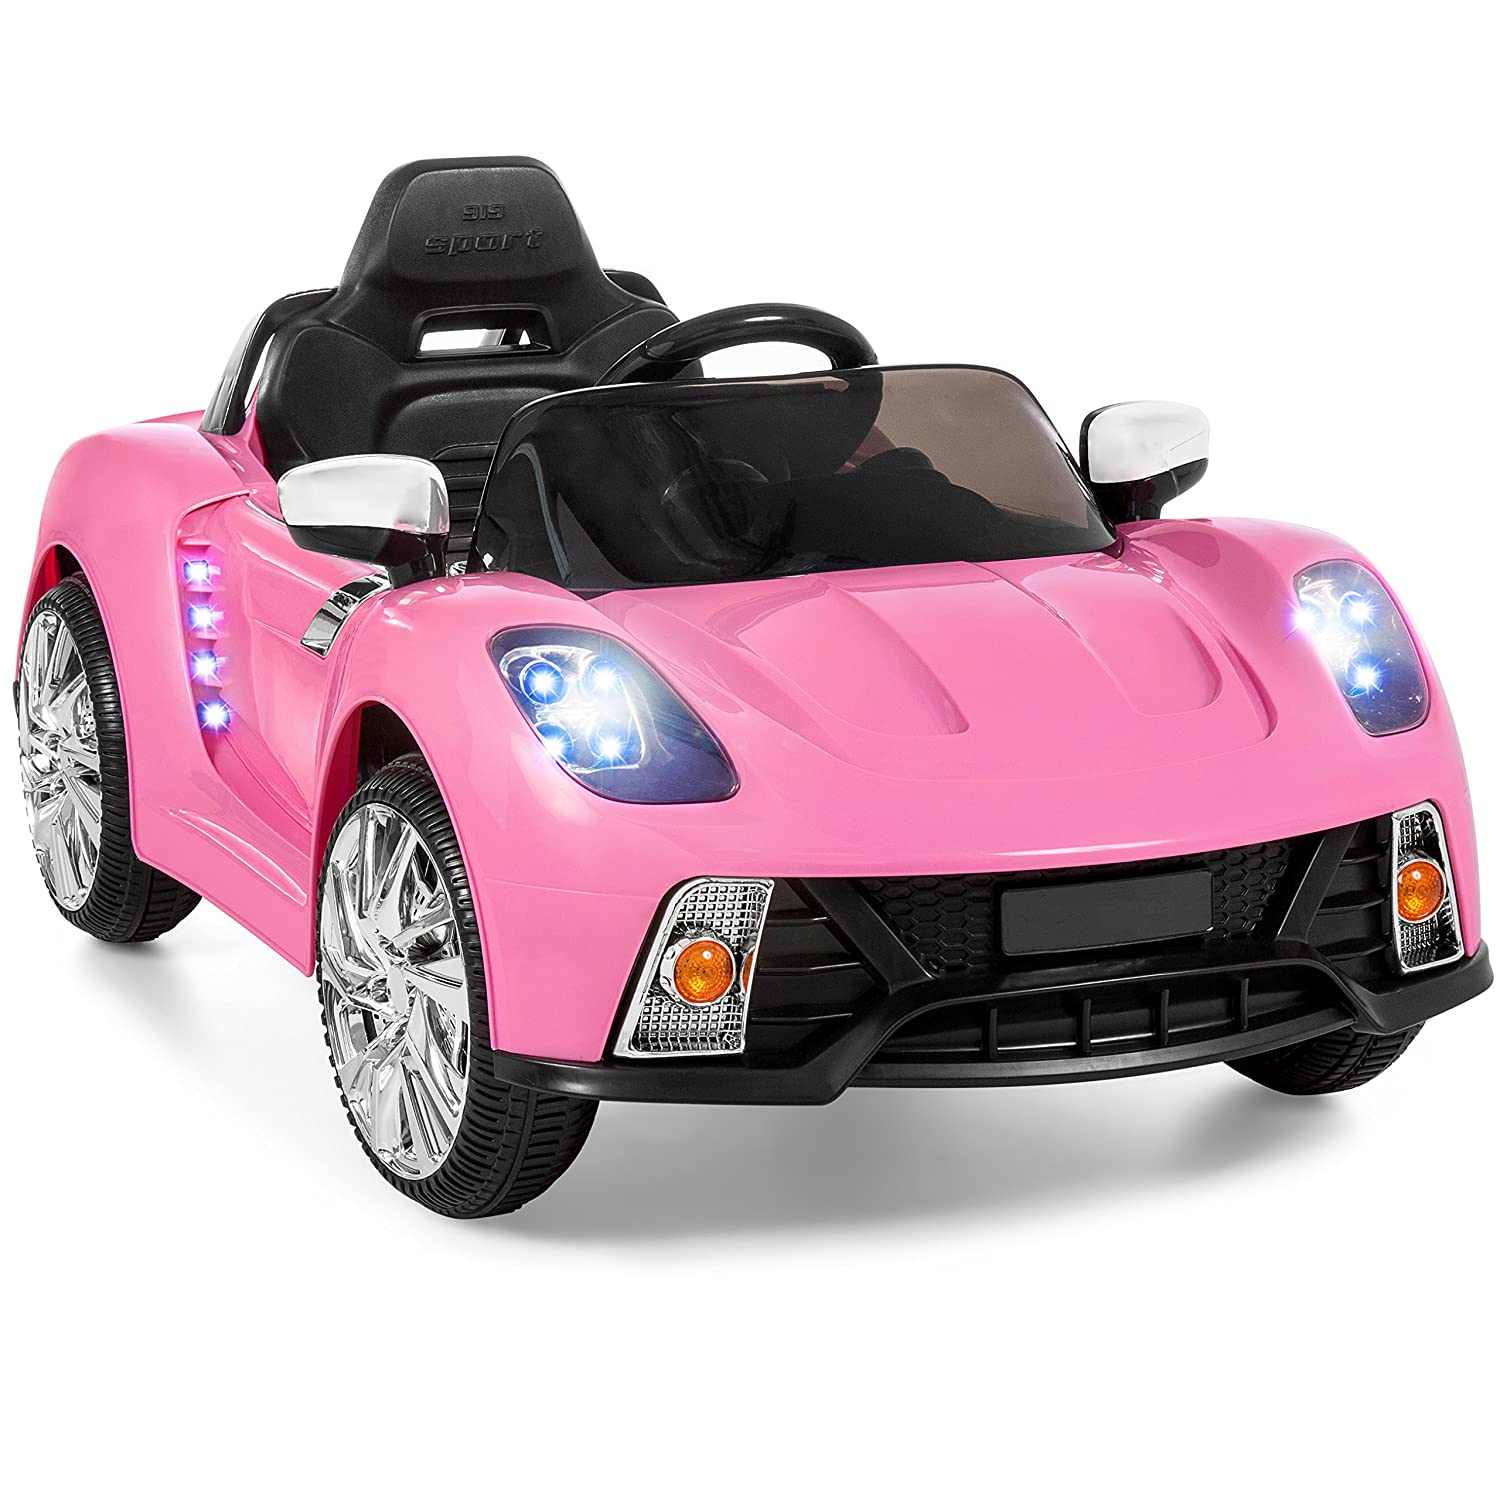 9 Best Battery Powered Kids Vehicles Reviews in 2021 15